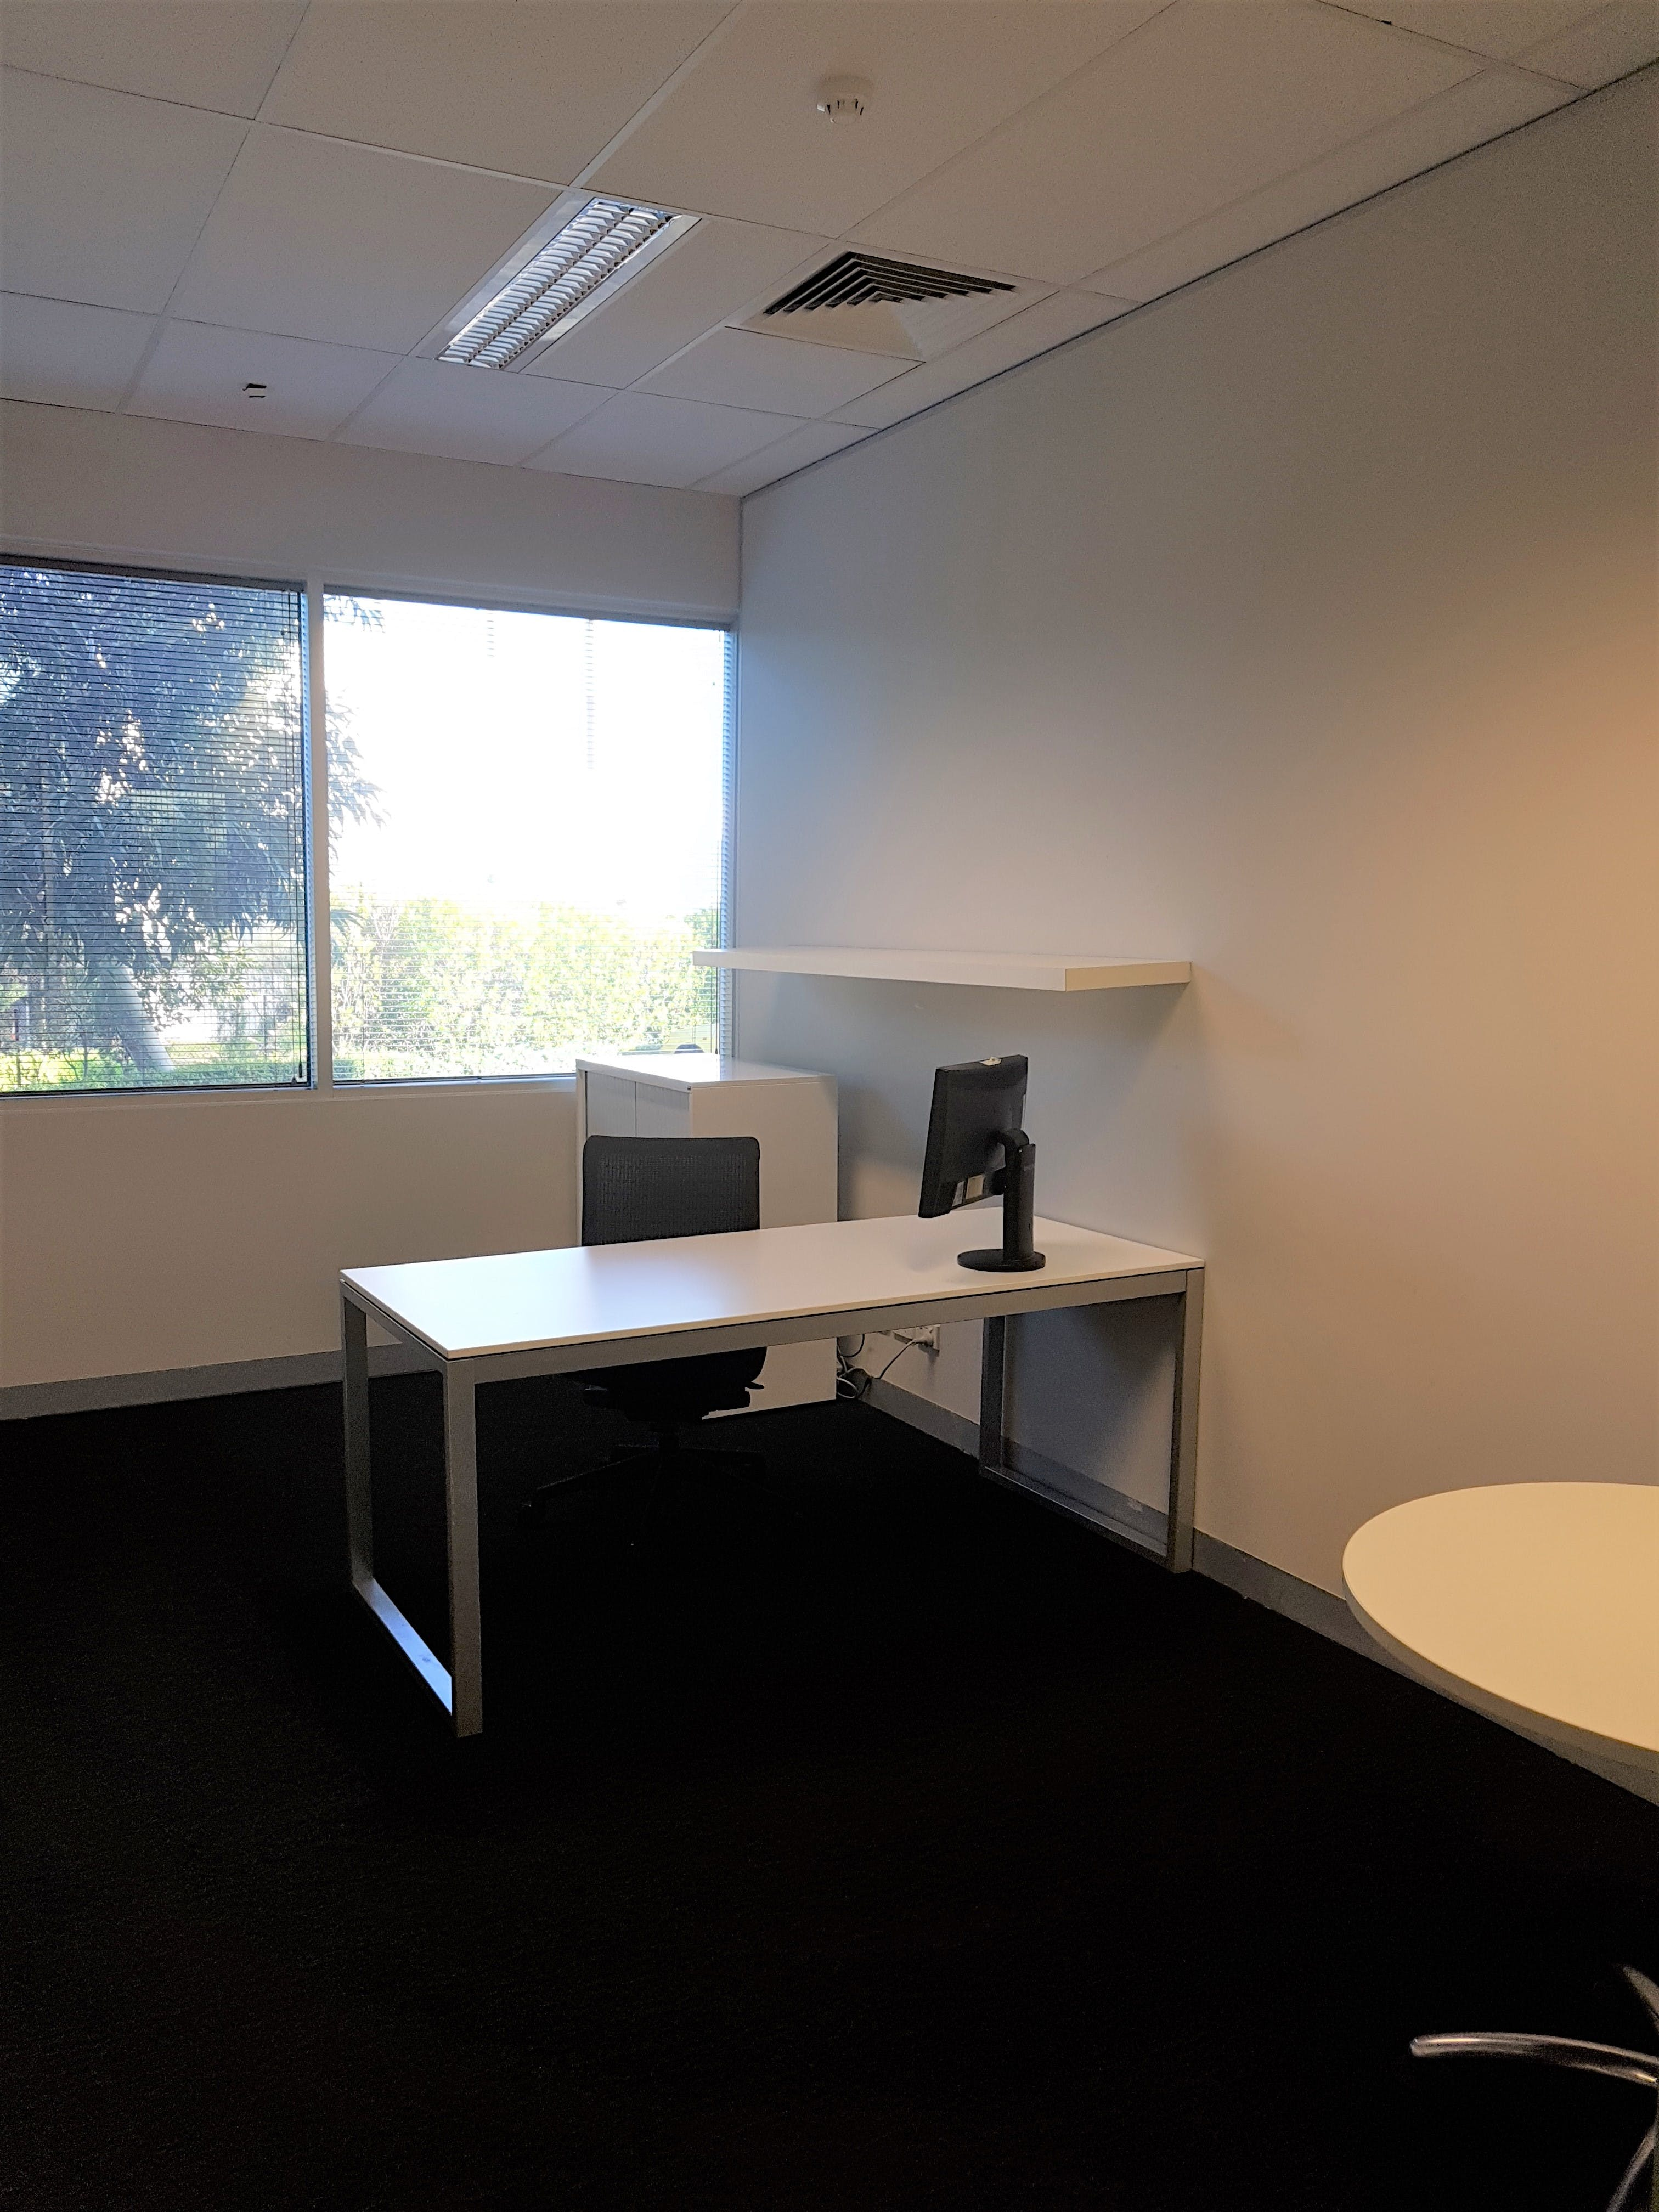 Office Space 1, private office at Unipark Business Estate, image 1